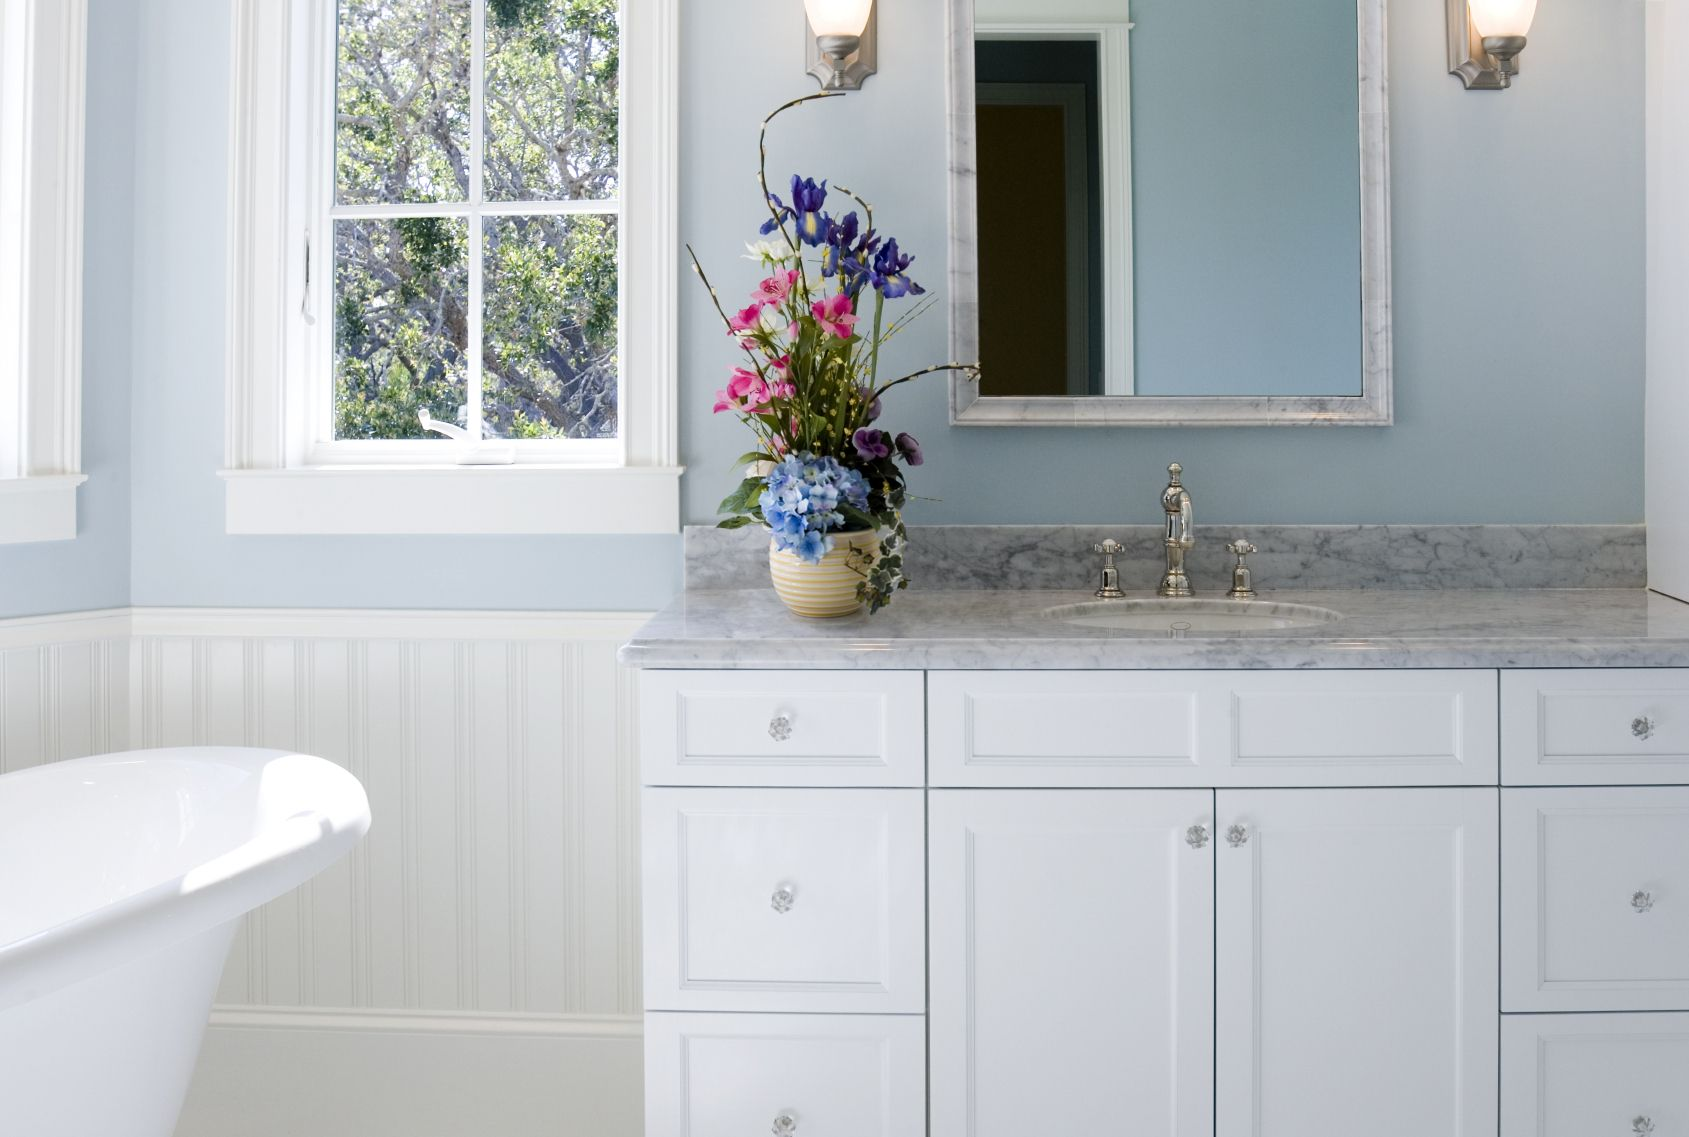 Bathroom Repair Tutor - Bathroom repair tutor